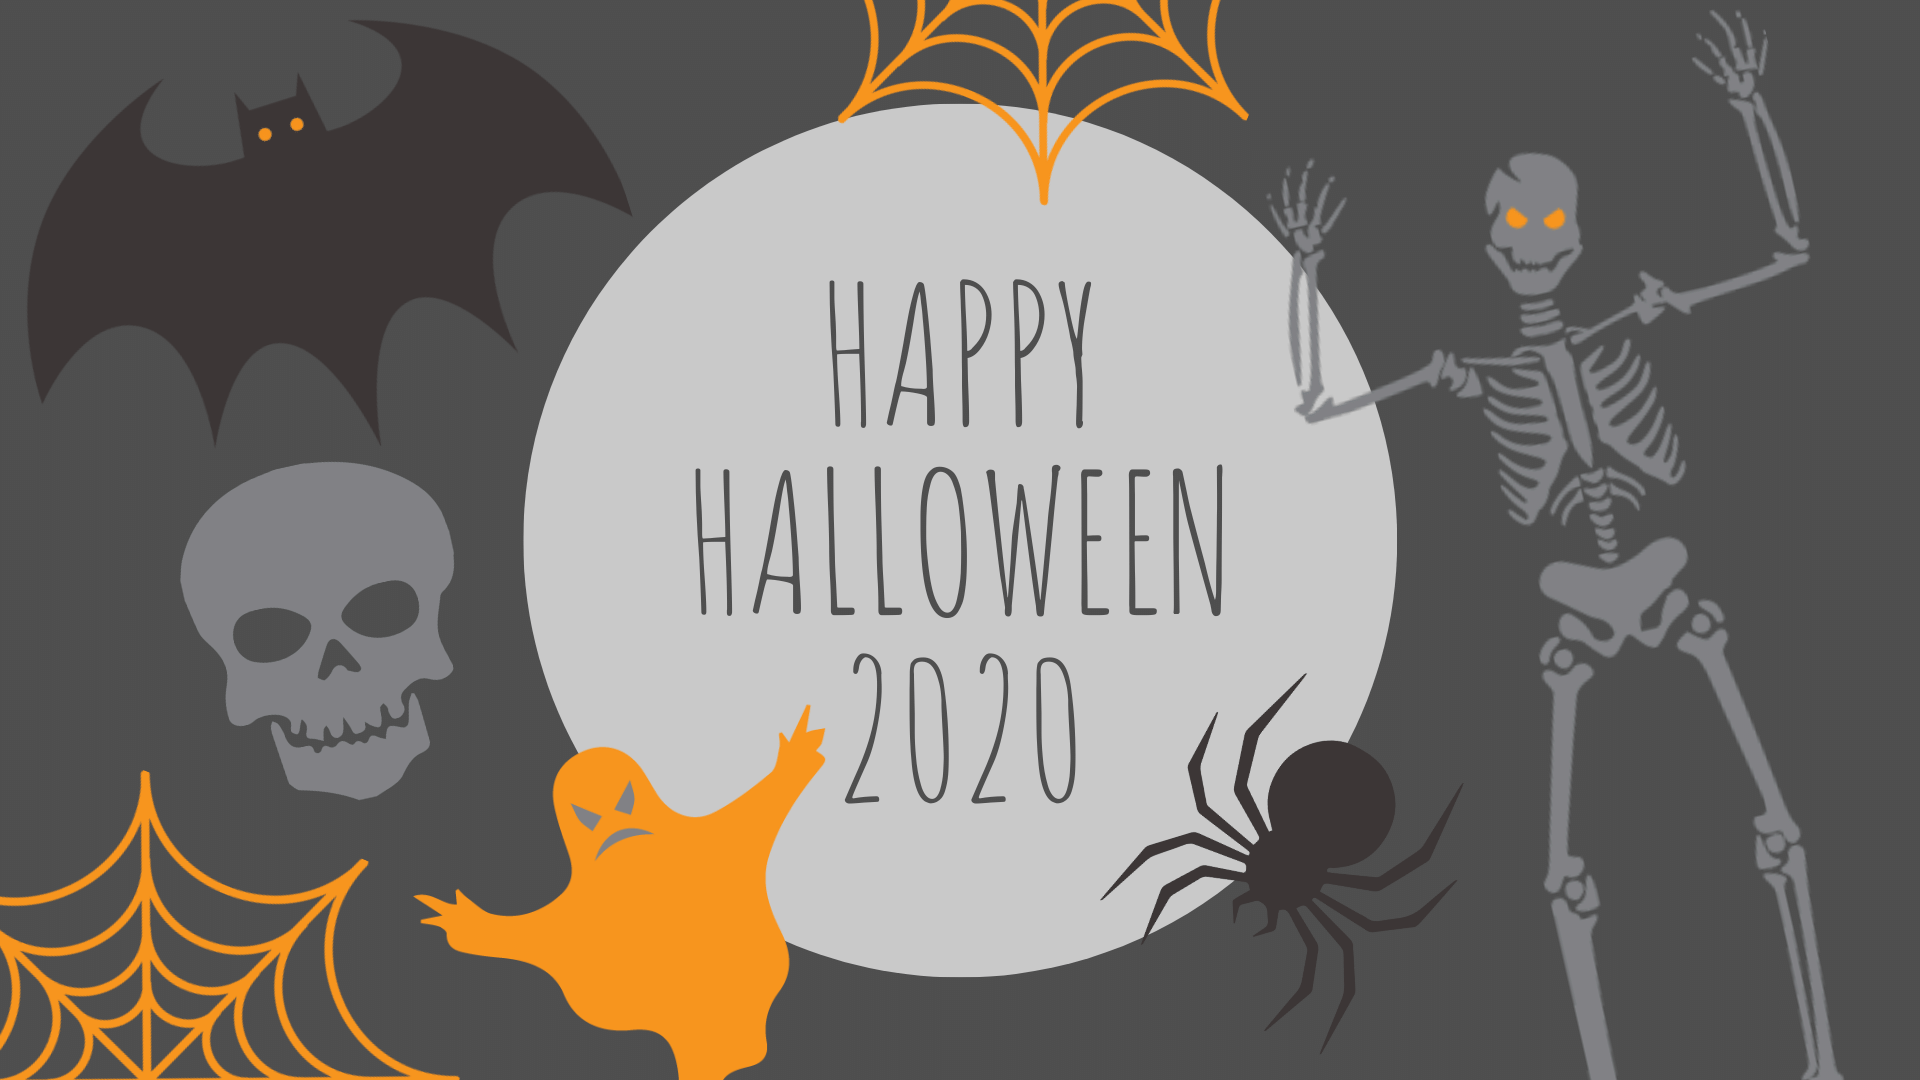 Halloween 2020 Wallpapers 1920x1080